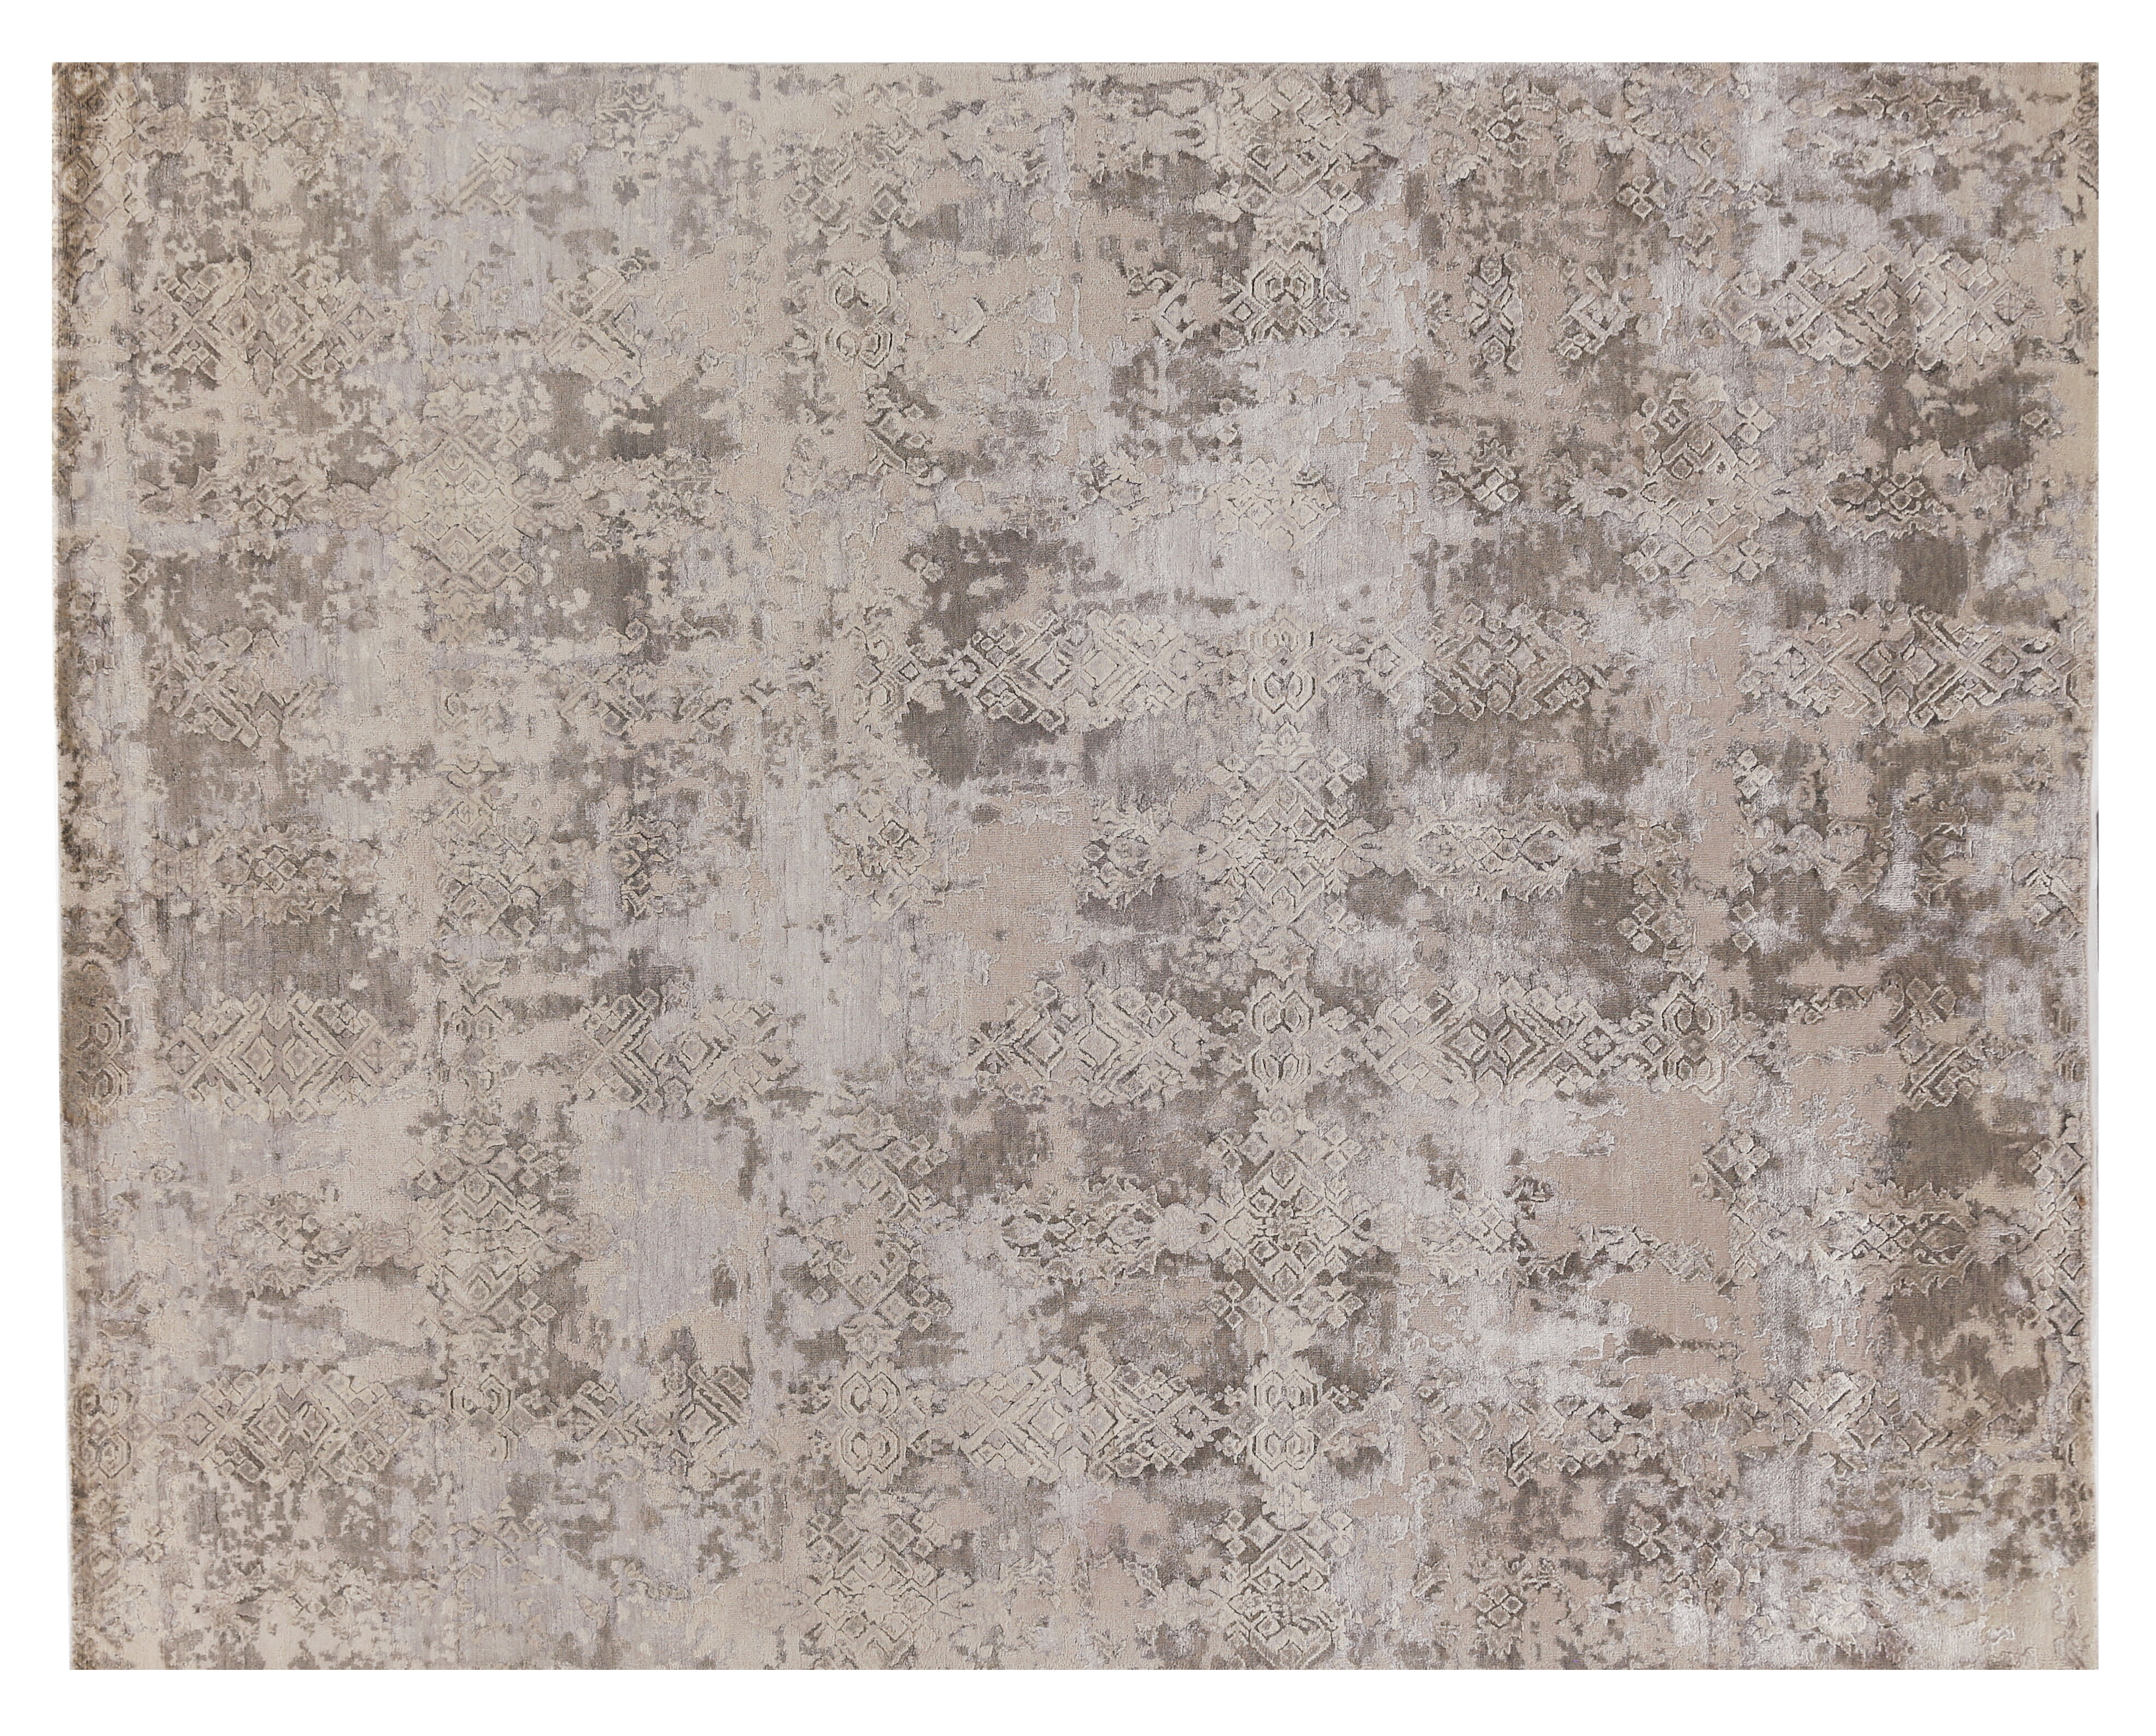 Exquisite Rugs Hundley Hand Knotted Wool Silk Gray Silver Area Rug Wayfair